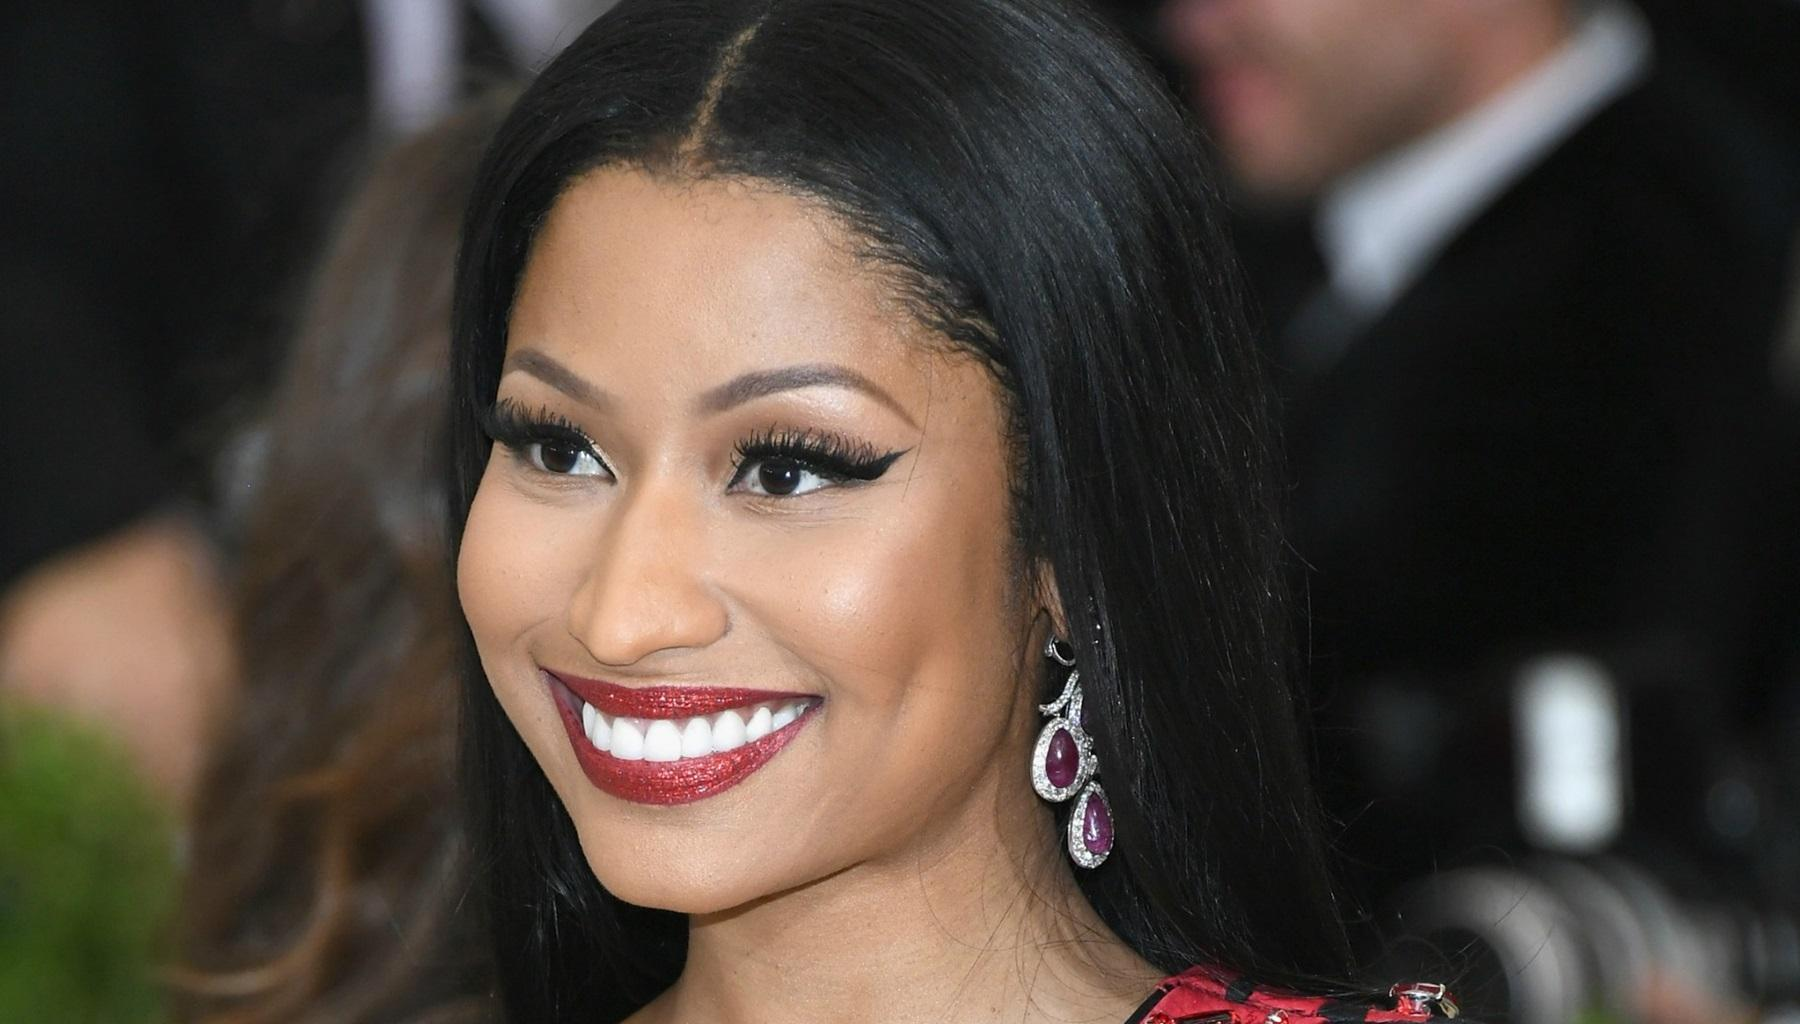 Nicki Minaj Seems To Hint At Her Post-Retirement Job With Her Latest Photos